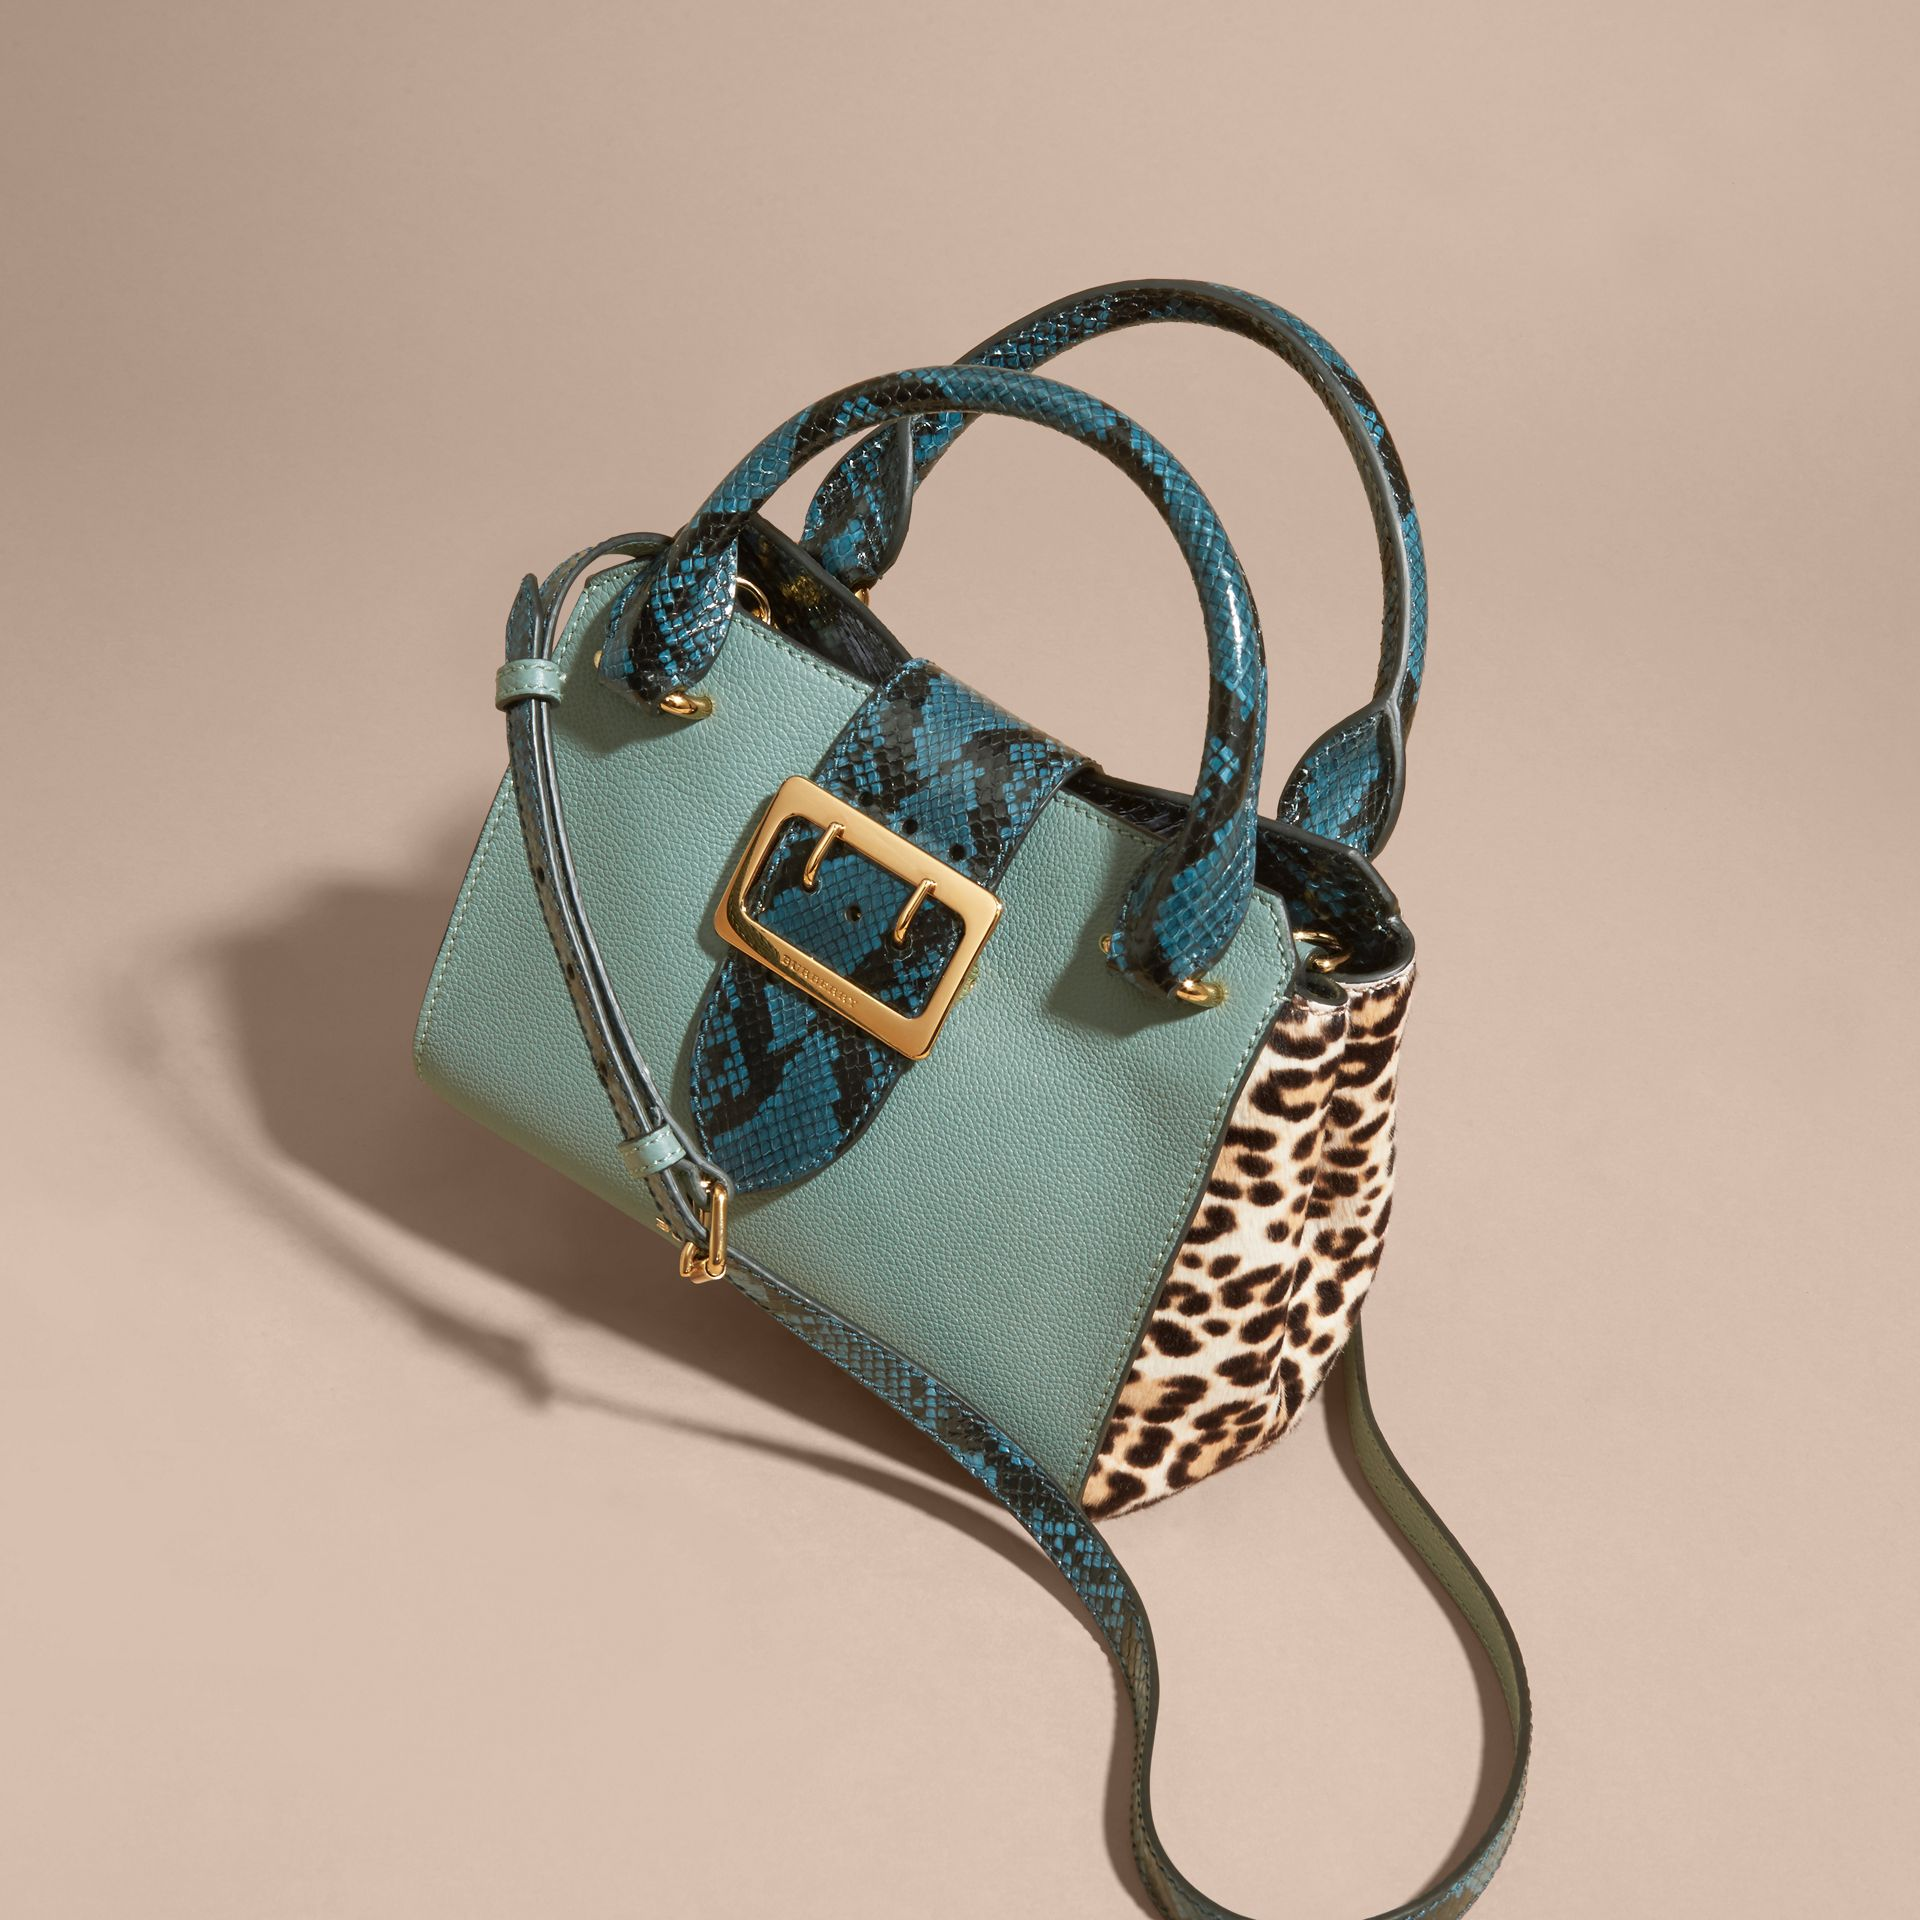 The Small Buckle Tote in Leather and  Leopard-print Calfskin in Eucalyptus Green - gallery image 8